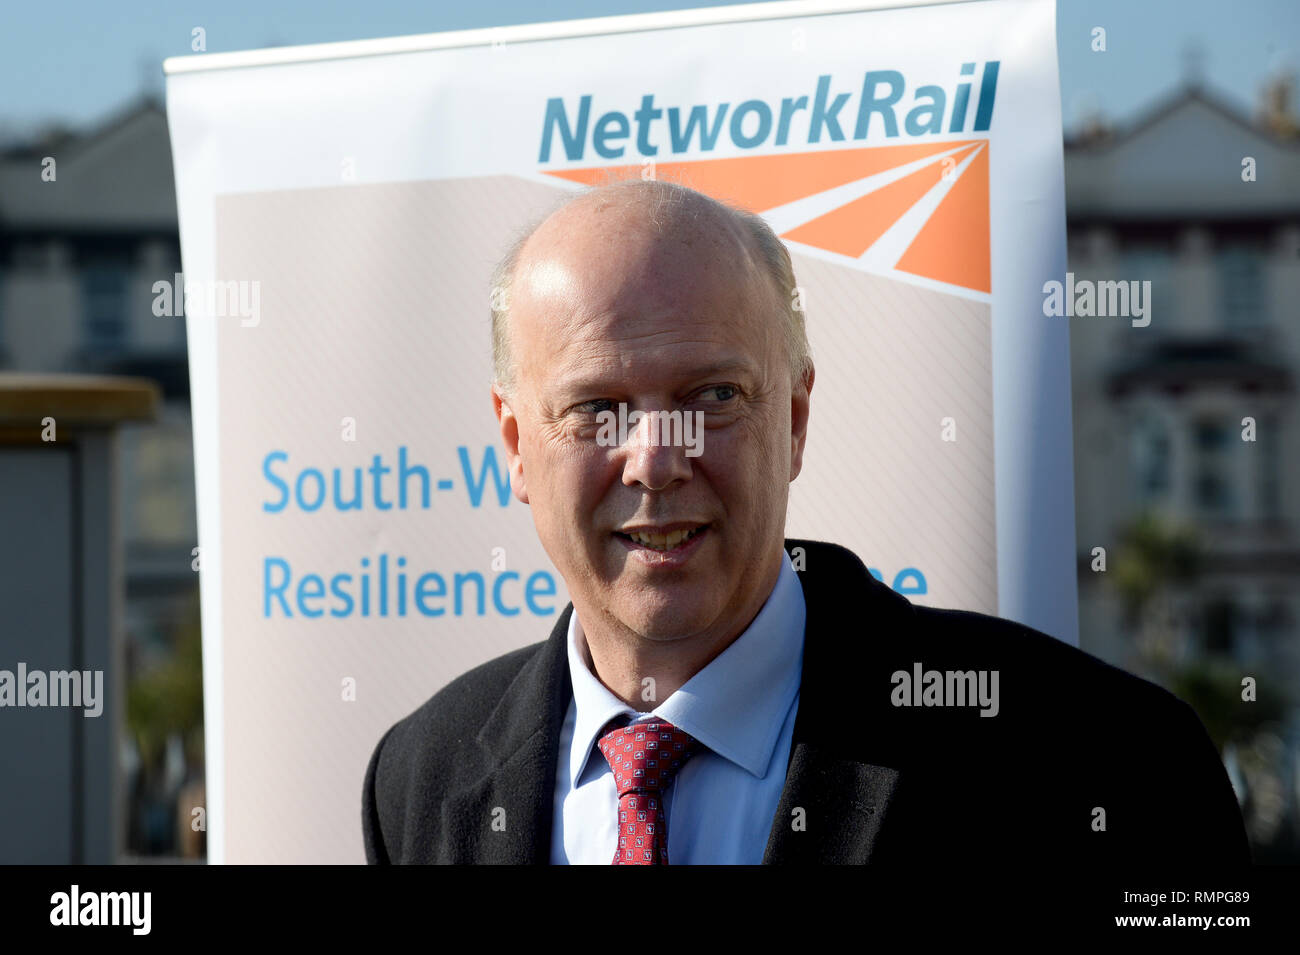 Dawlish, UK. 15th Feb, 2019. 15/02/2019  MP Chris Grayling visiting Dawlish. - Photo mandatory by-line: Andy Styles - Tel: 01626 872731 - Mobile: 07834214253 TQAS20190215B-005_C Credit: Andy Styles Photography/Alamy Live News - Stock Image